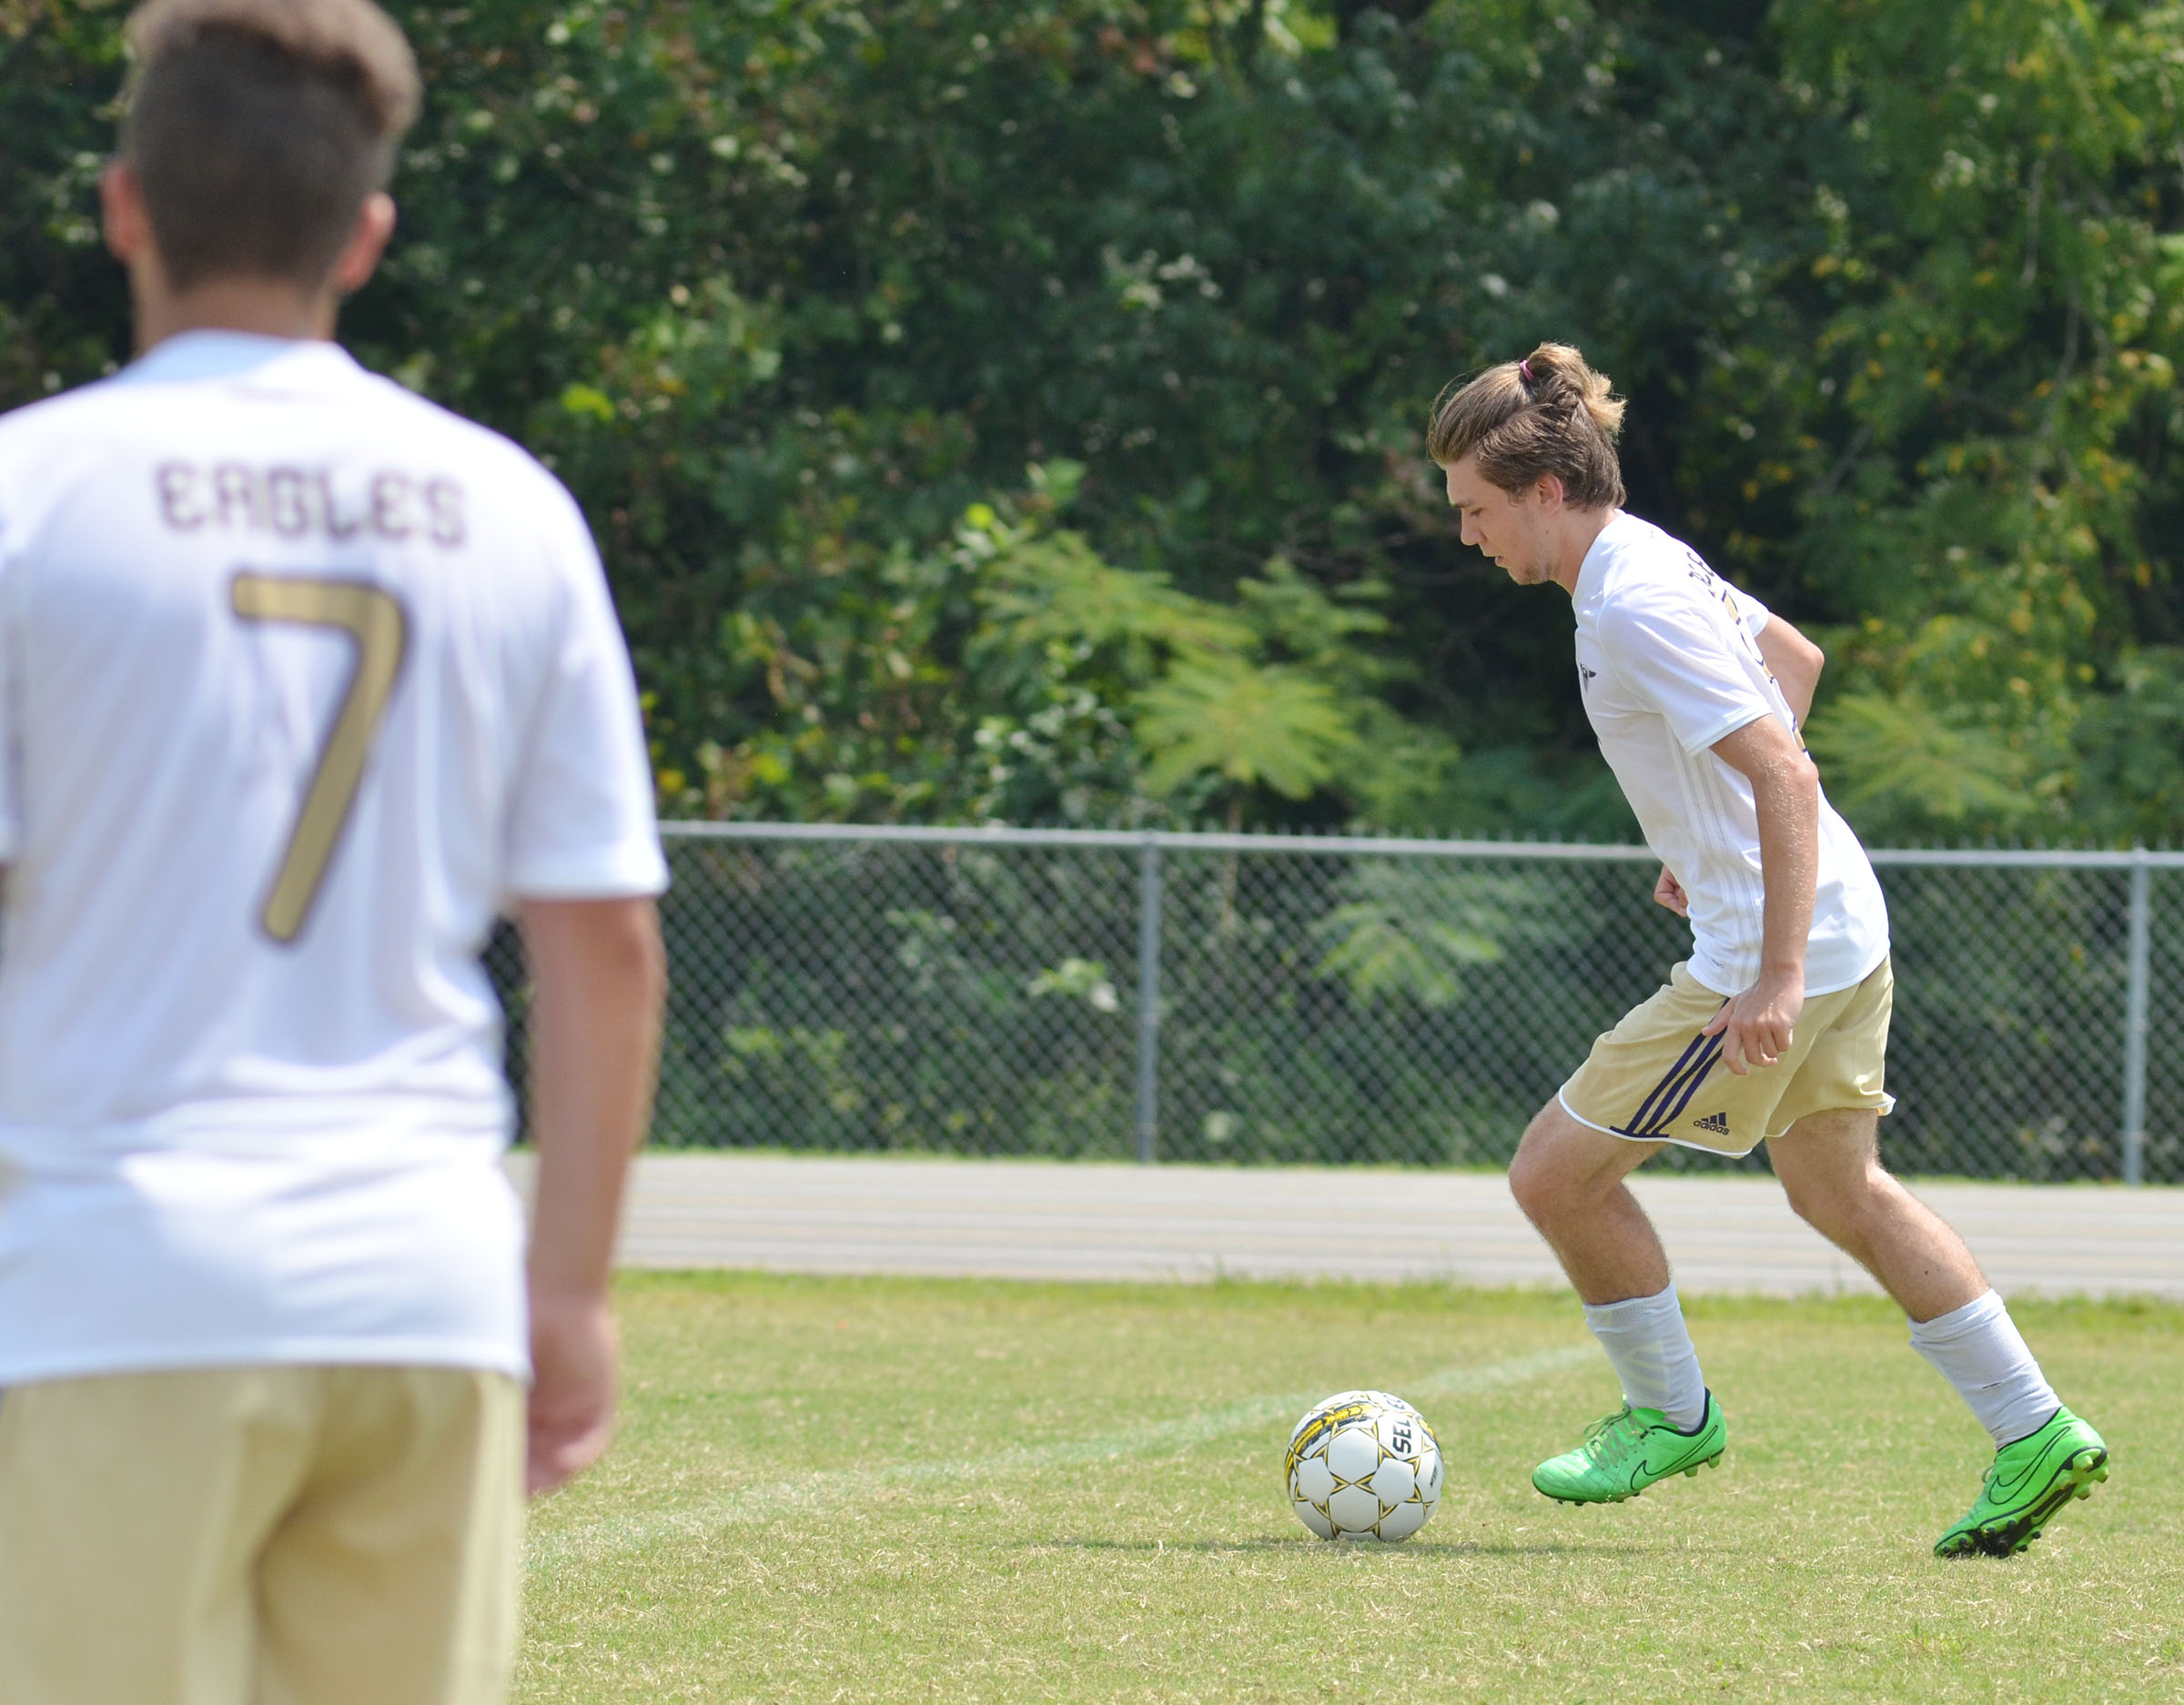 CHS senior Christian Berry kicks the ball.